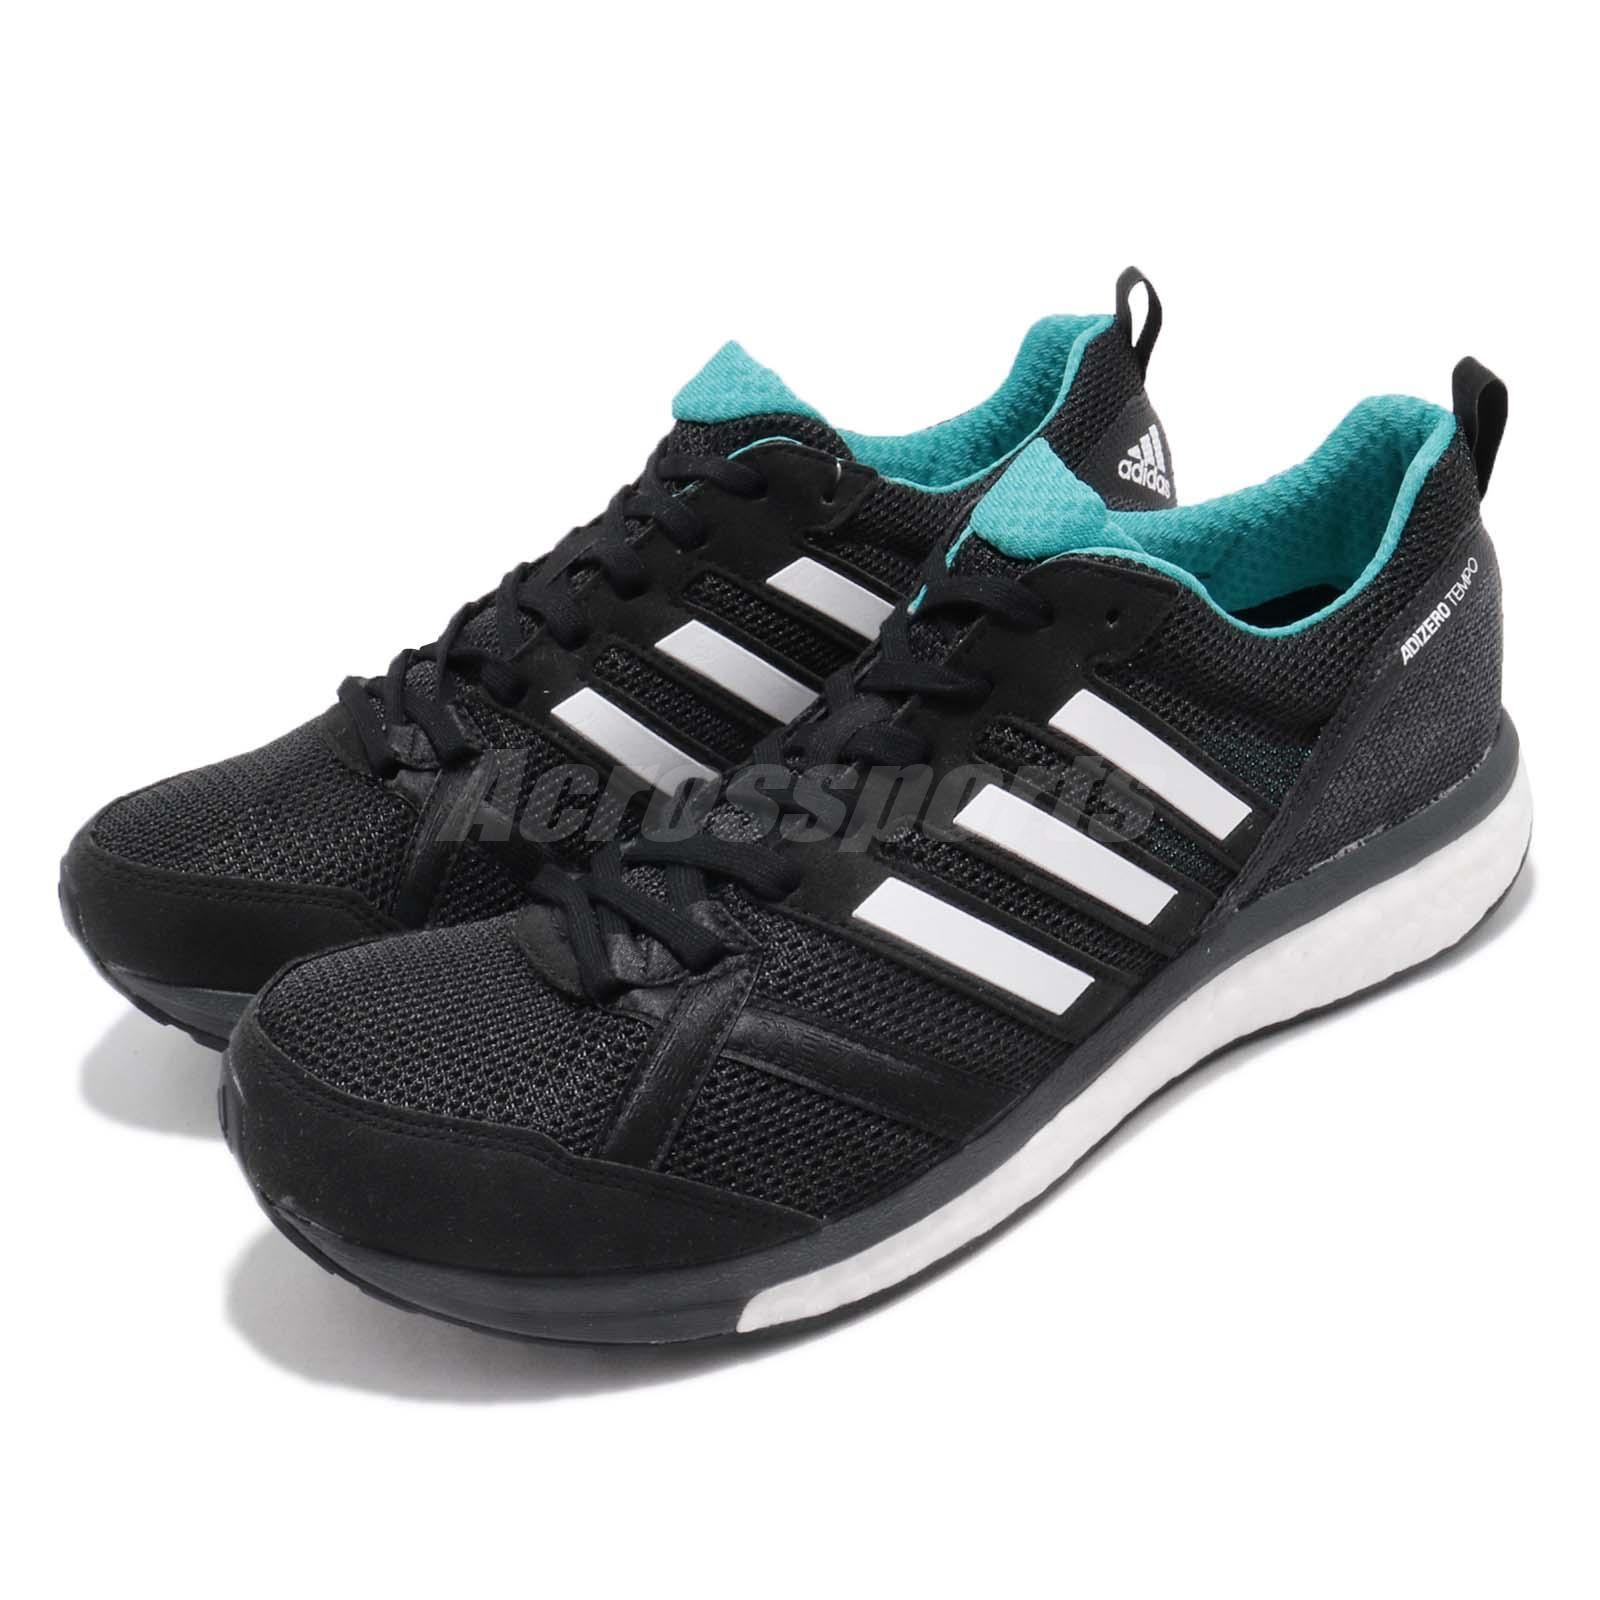 b348f884e1302 Details about adidas Adizero Tempo 9 BOOST Black White Continental Mens Running  Shoes BB6649